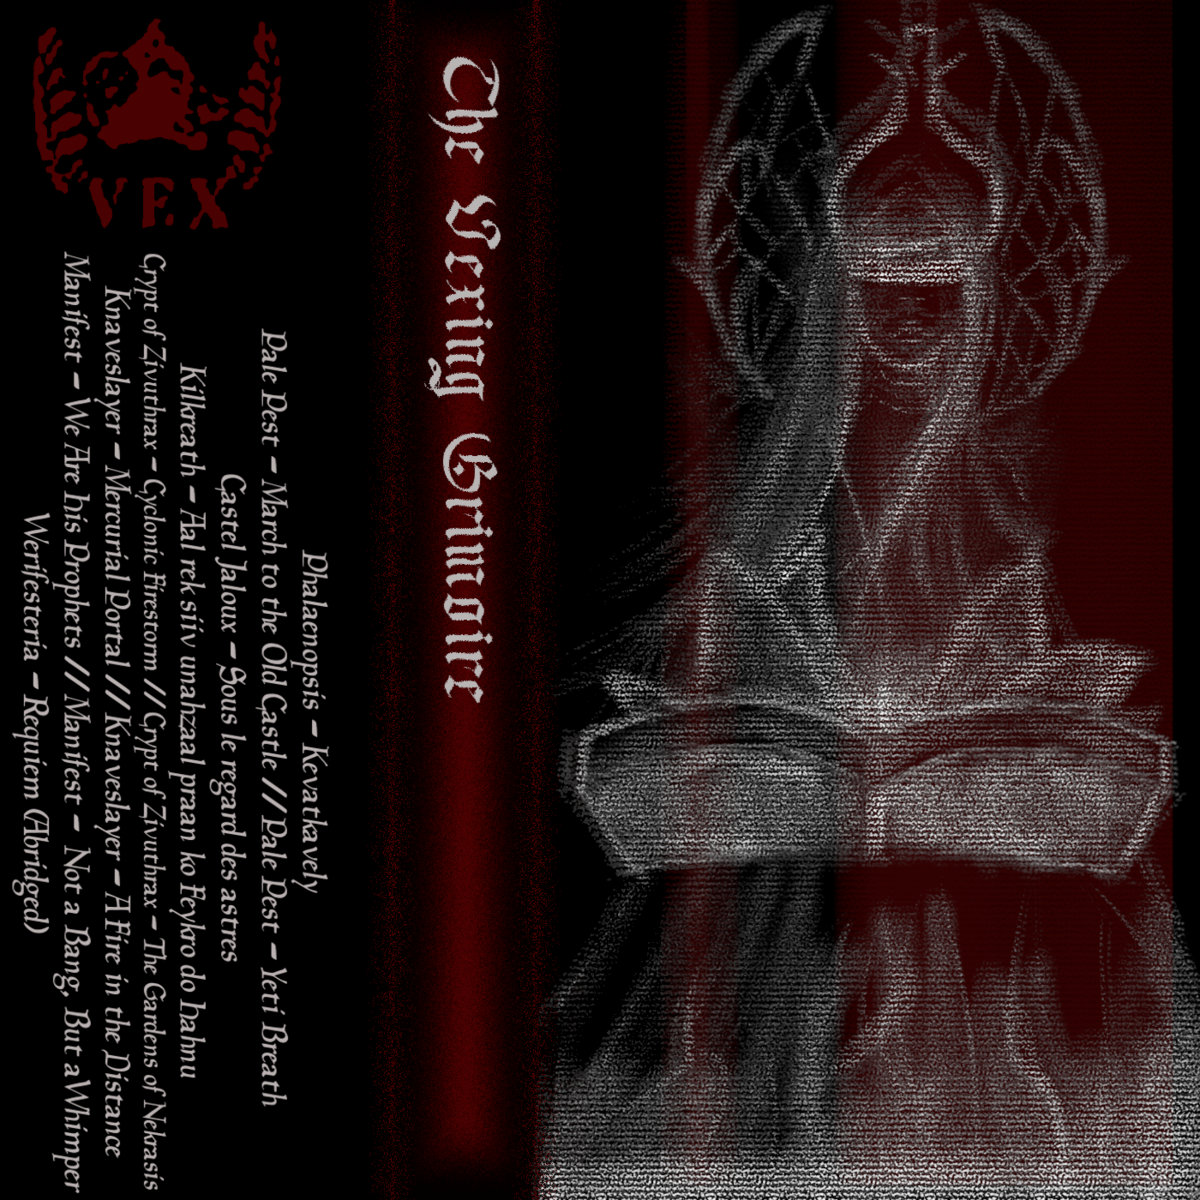 https://thevexinggrimoire.bandcamp.com/album/the-vexing-grimoire